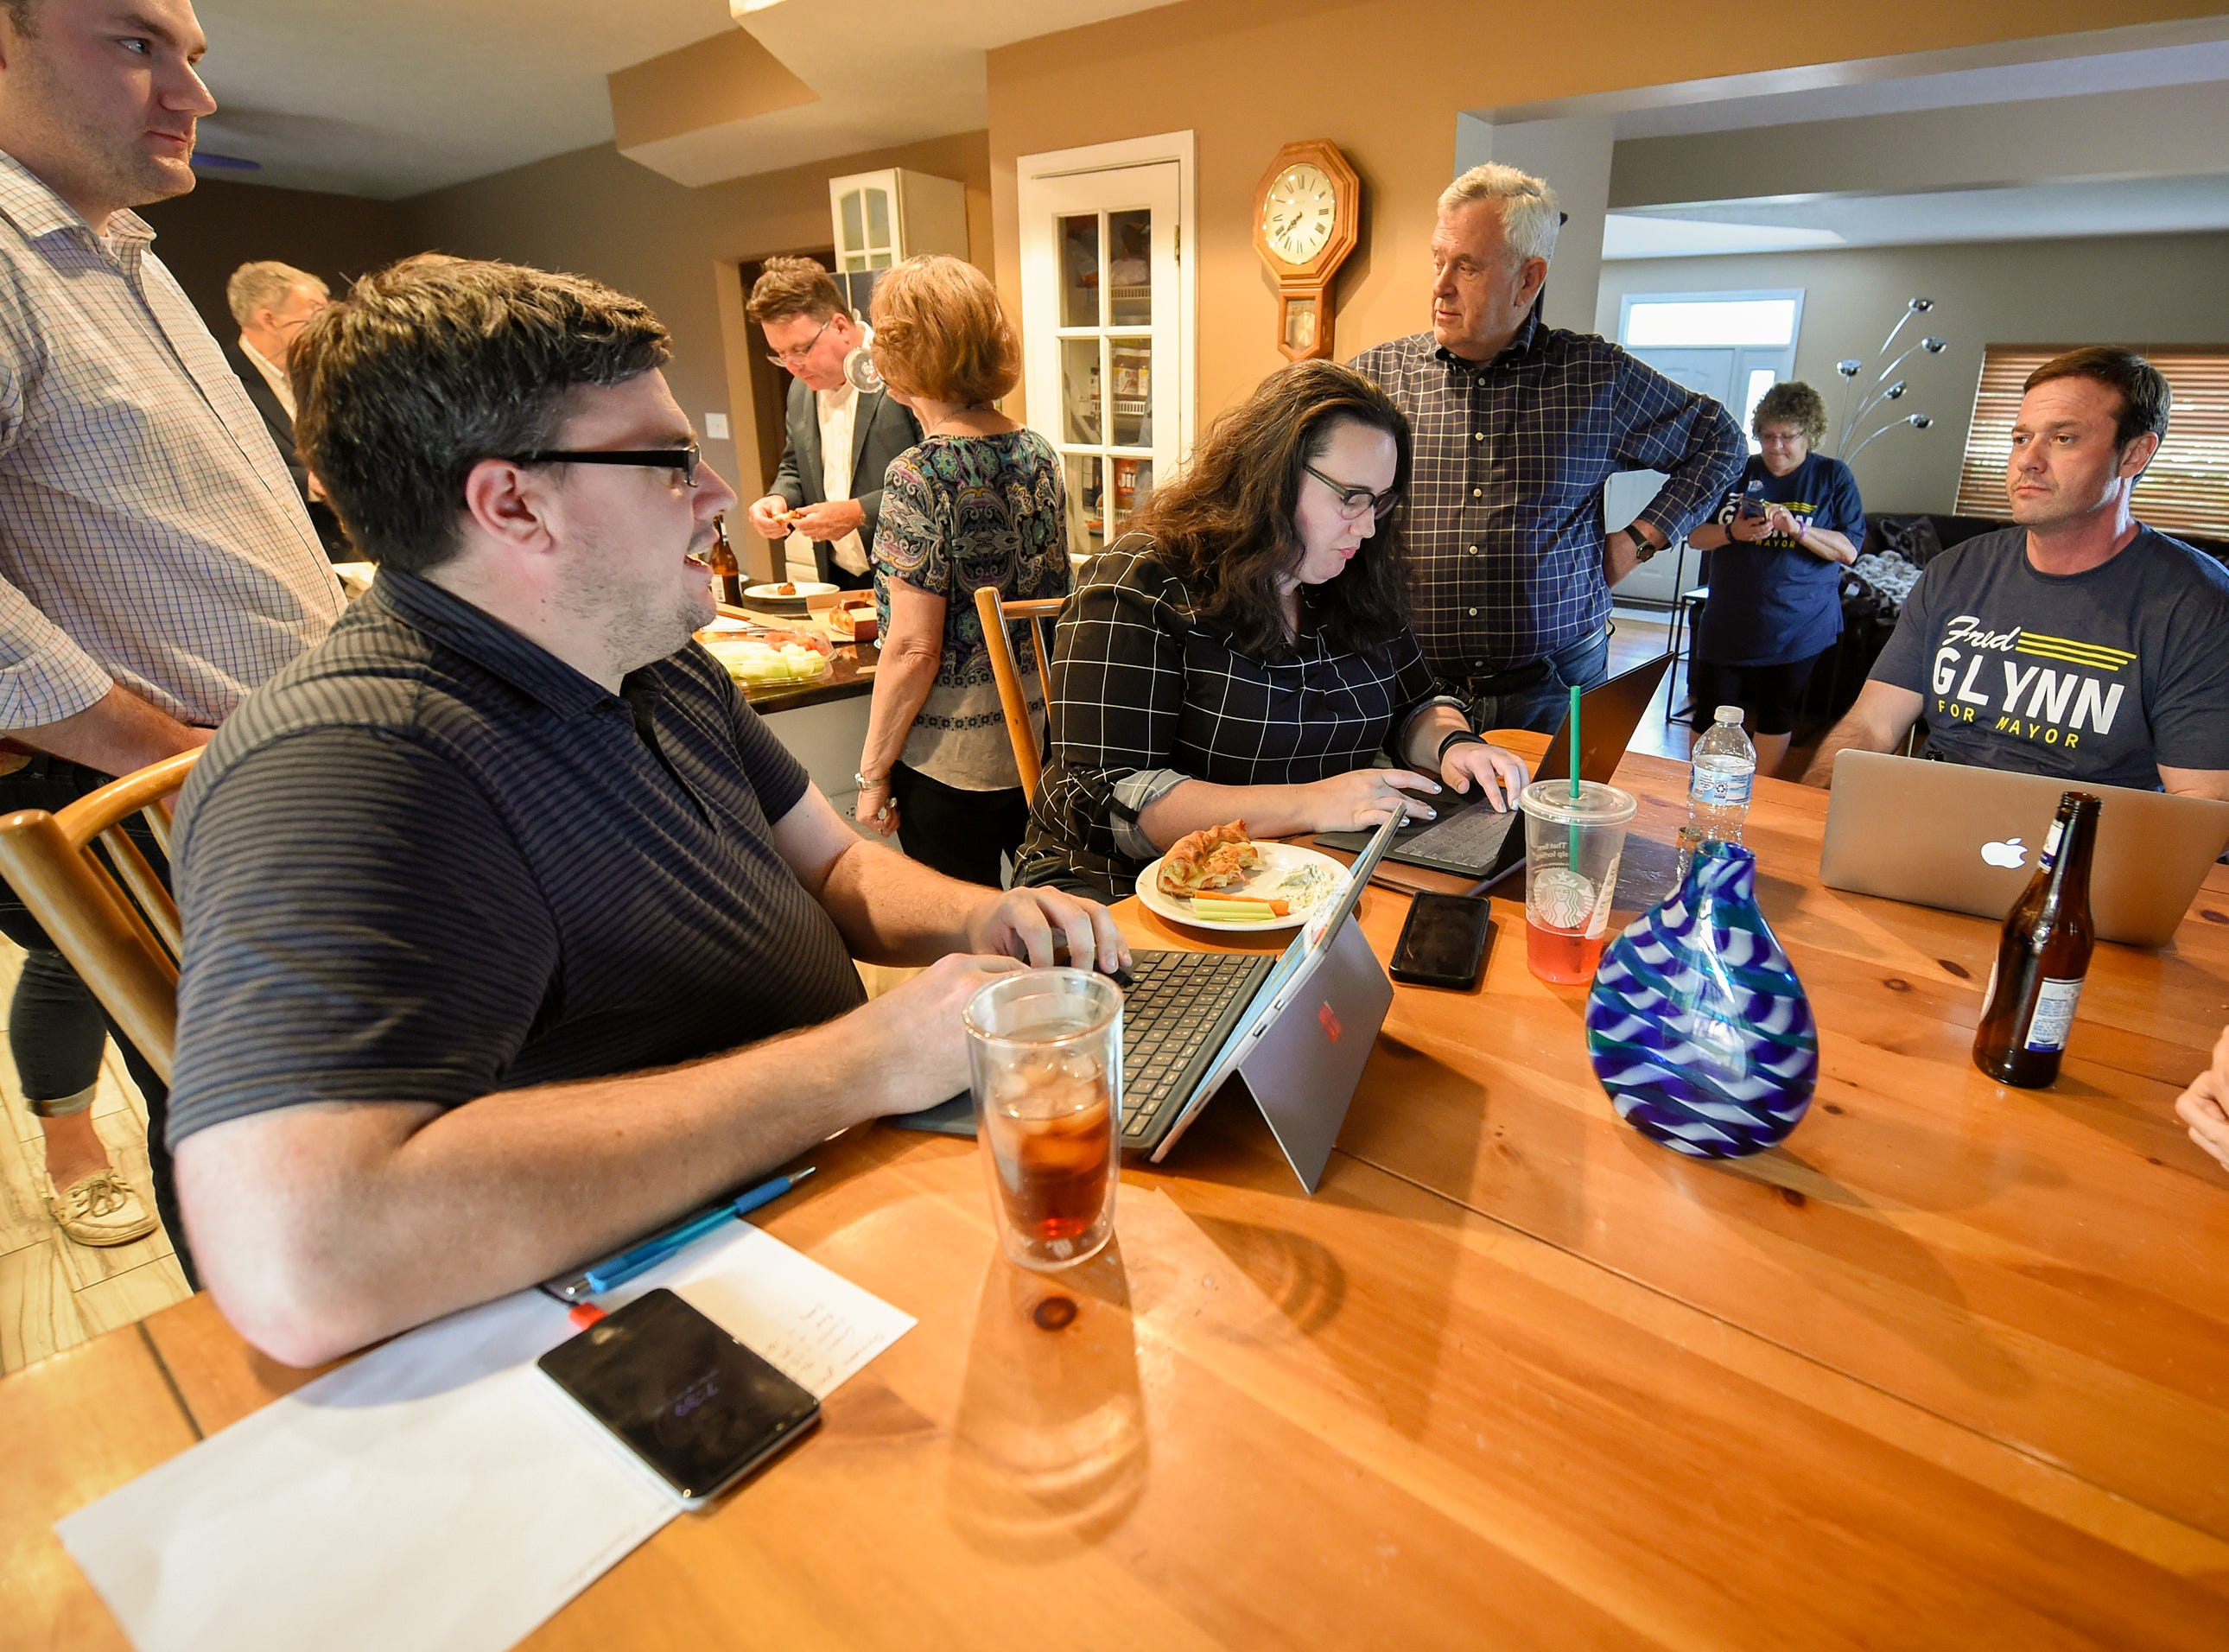 Family, friends and supporters gathered at the home of Fred Glynn, Carmel mayoral candidate as election results were publicized, Tuesday, May 7, 2019. Glynn campaigned for the office in hopes of unseating incumbent Jim Brainard who was seeking his seventh term in the office.